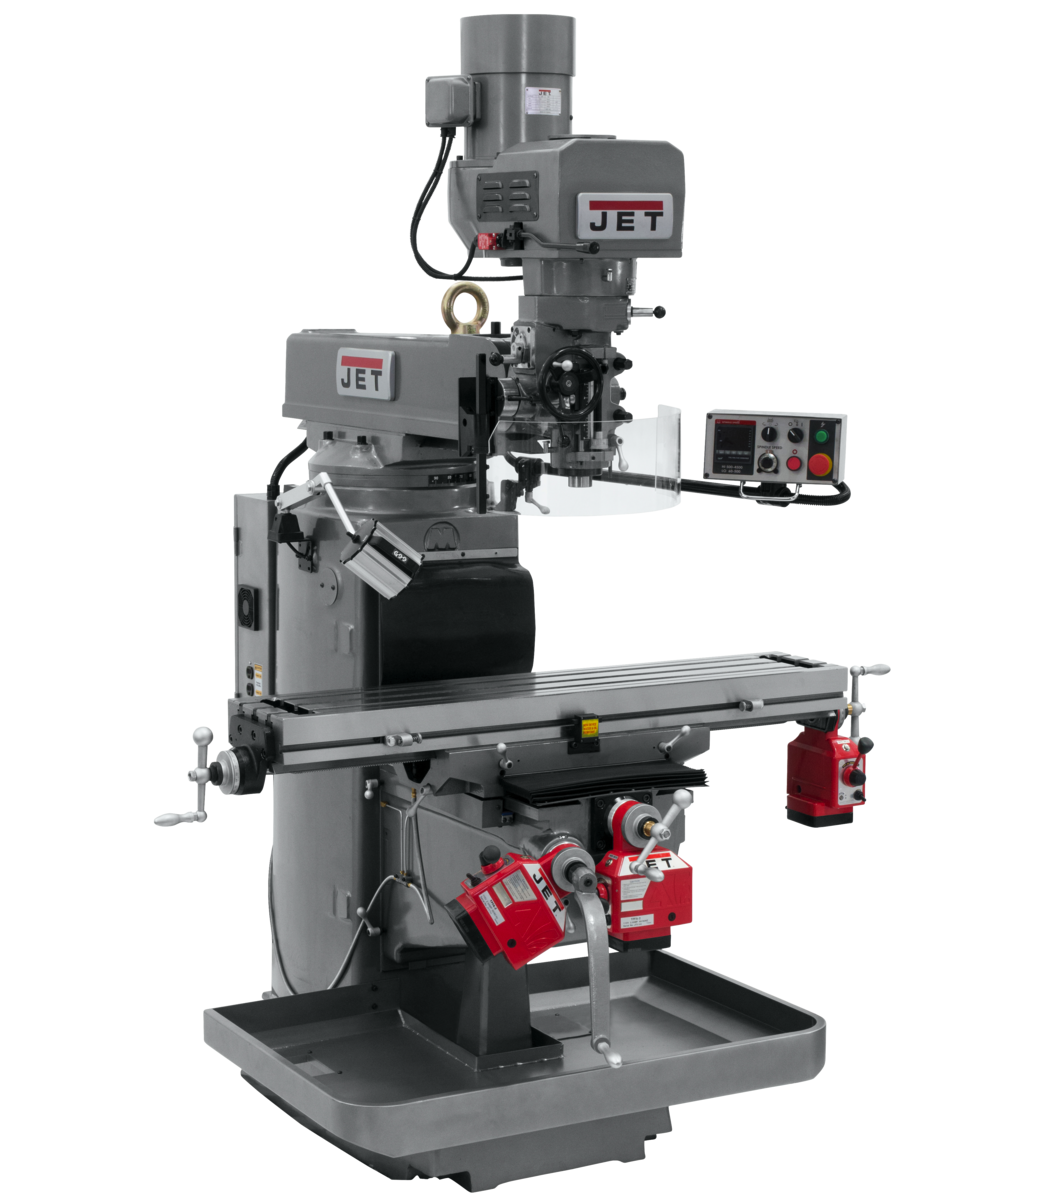 JTM-1050EVS2/230 Mill With X, Y and Z-Axis Powerfeeds